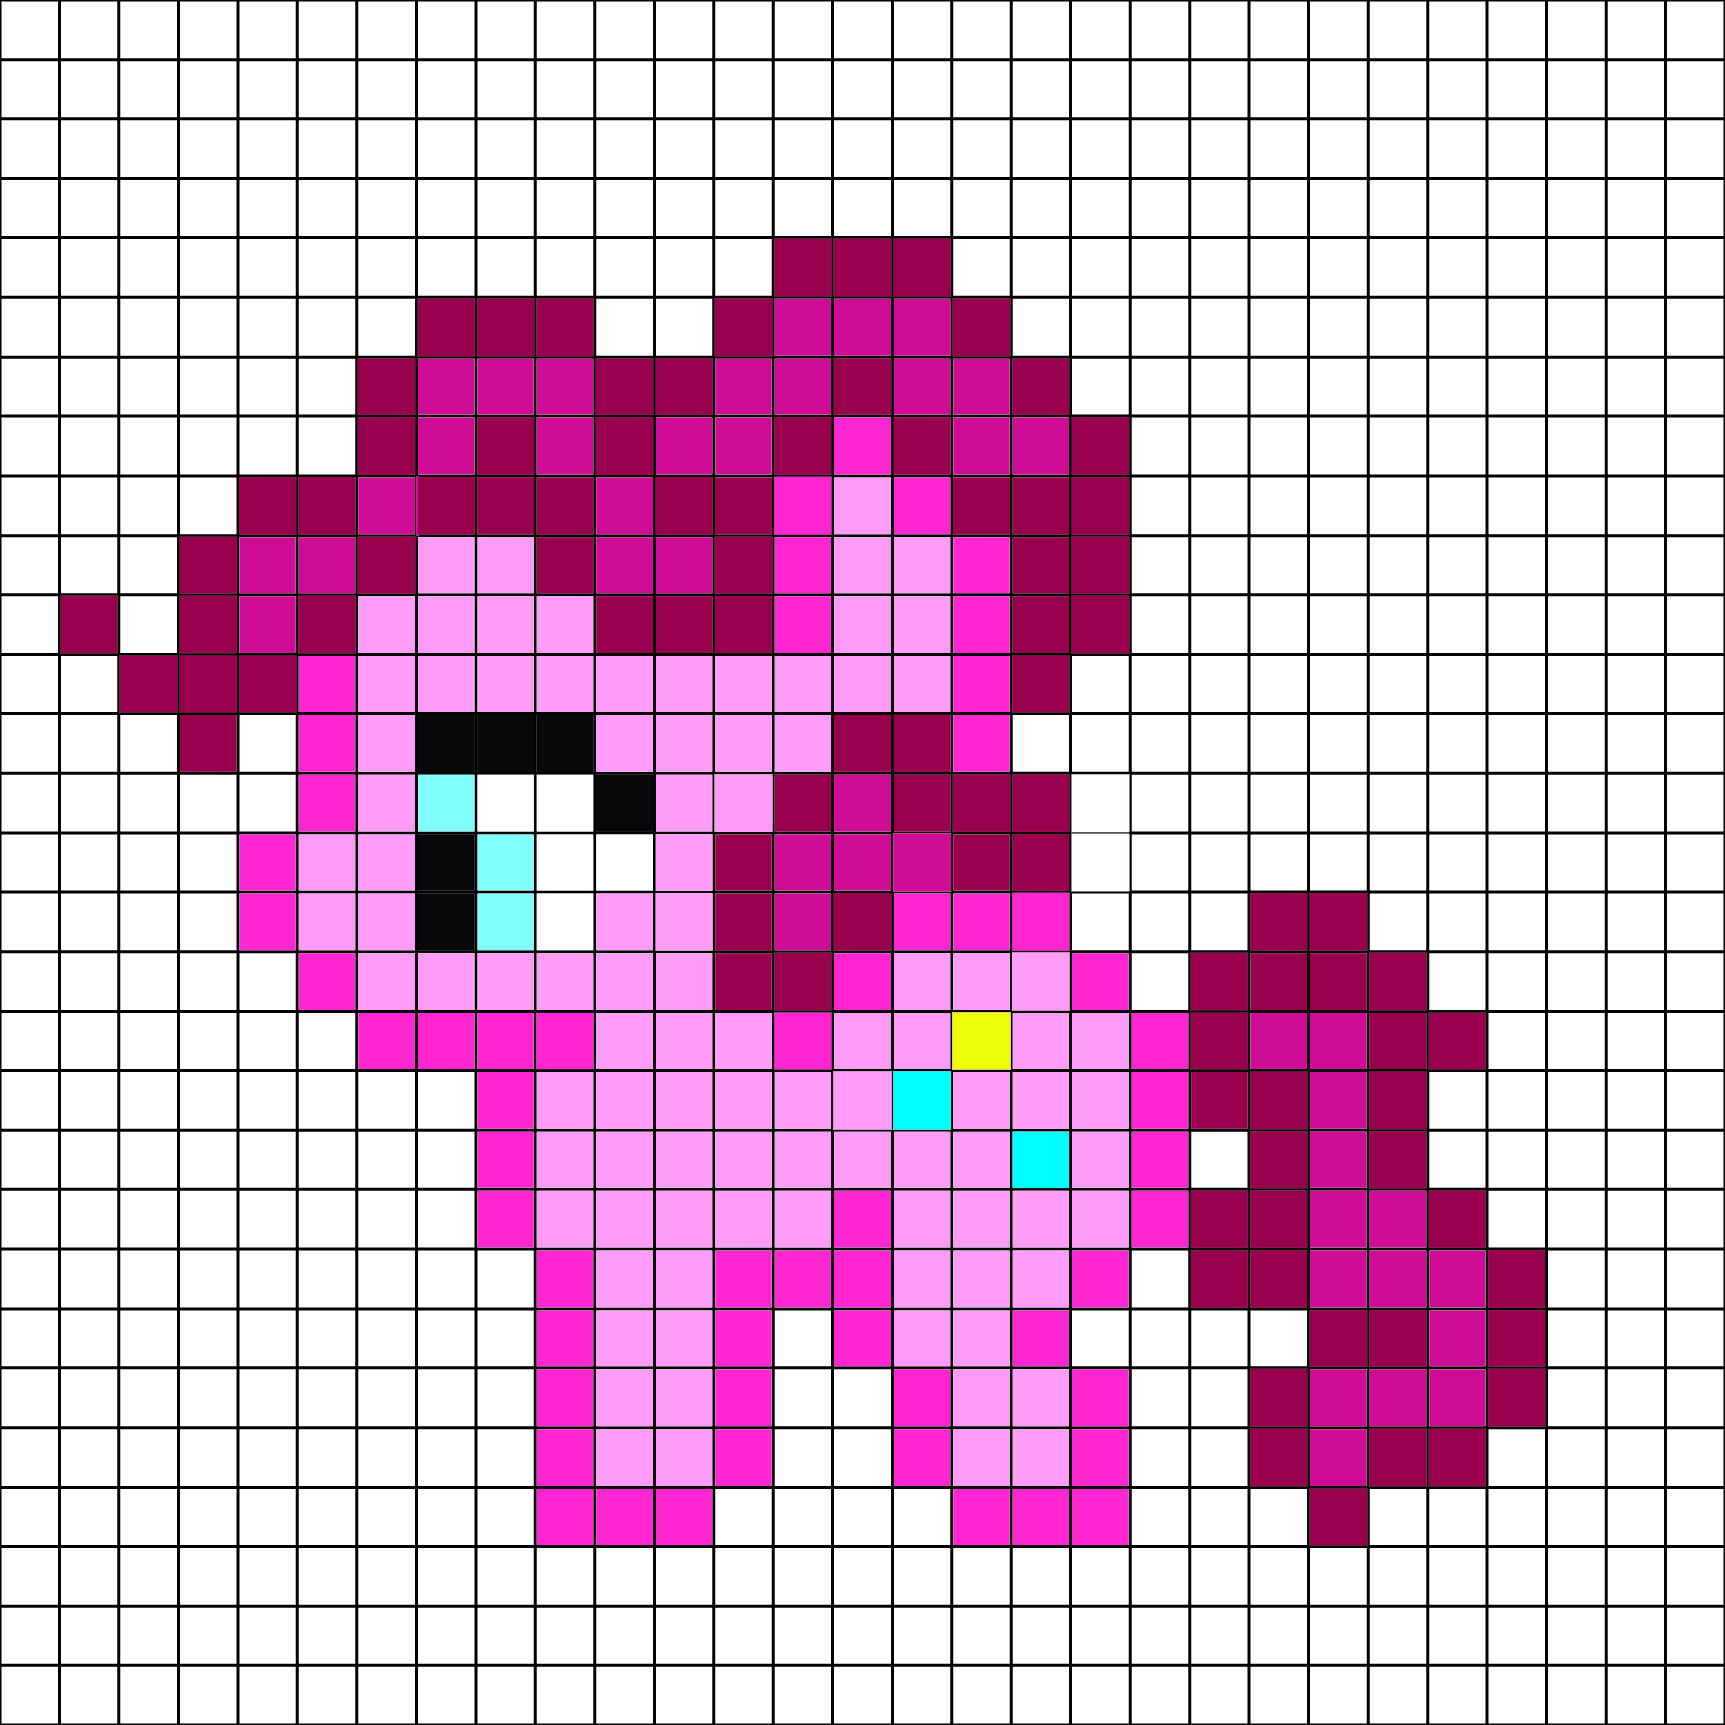 image regarding Pony Bead Patterns Free Printable called My minimal pony - Pinkie Pie behavior - by means of me For a totally free and